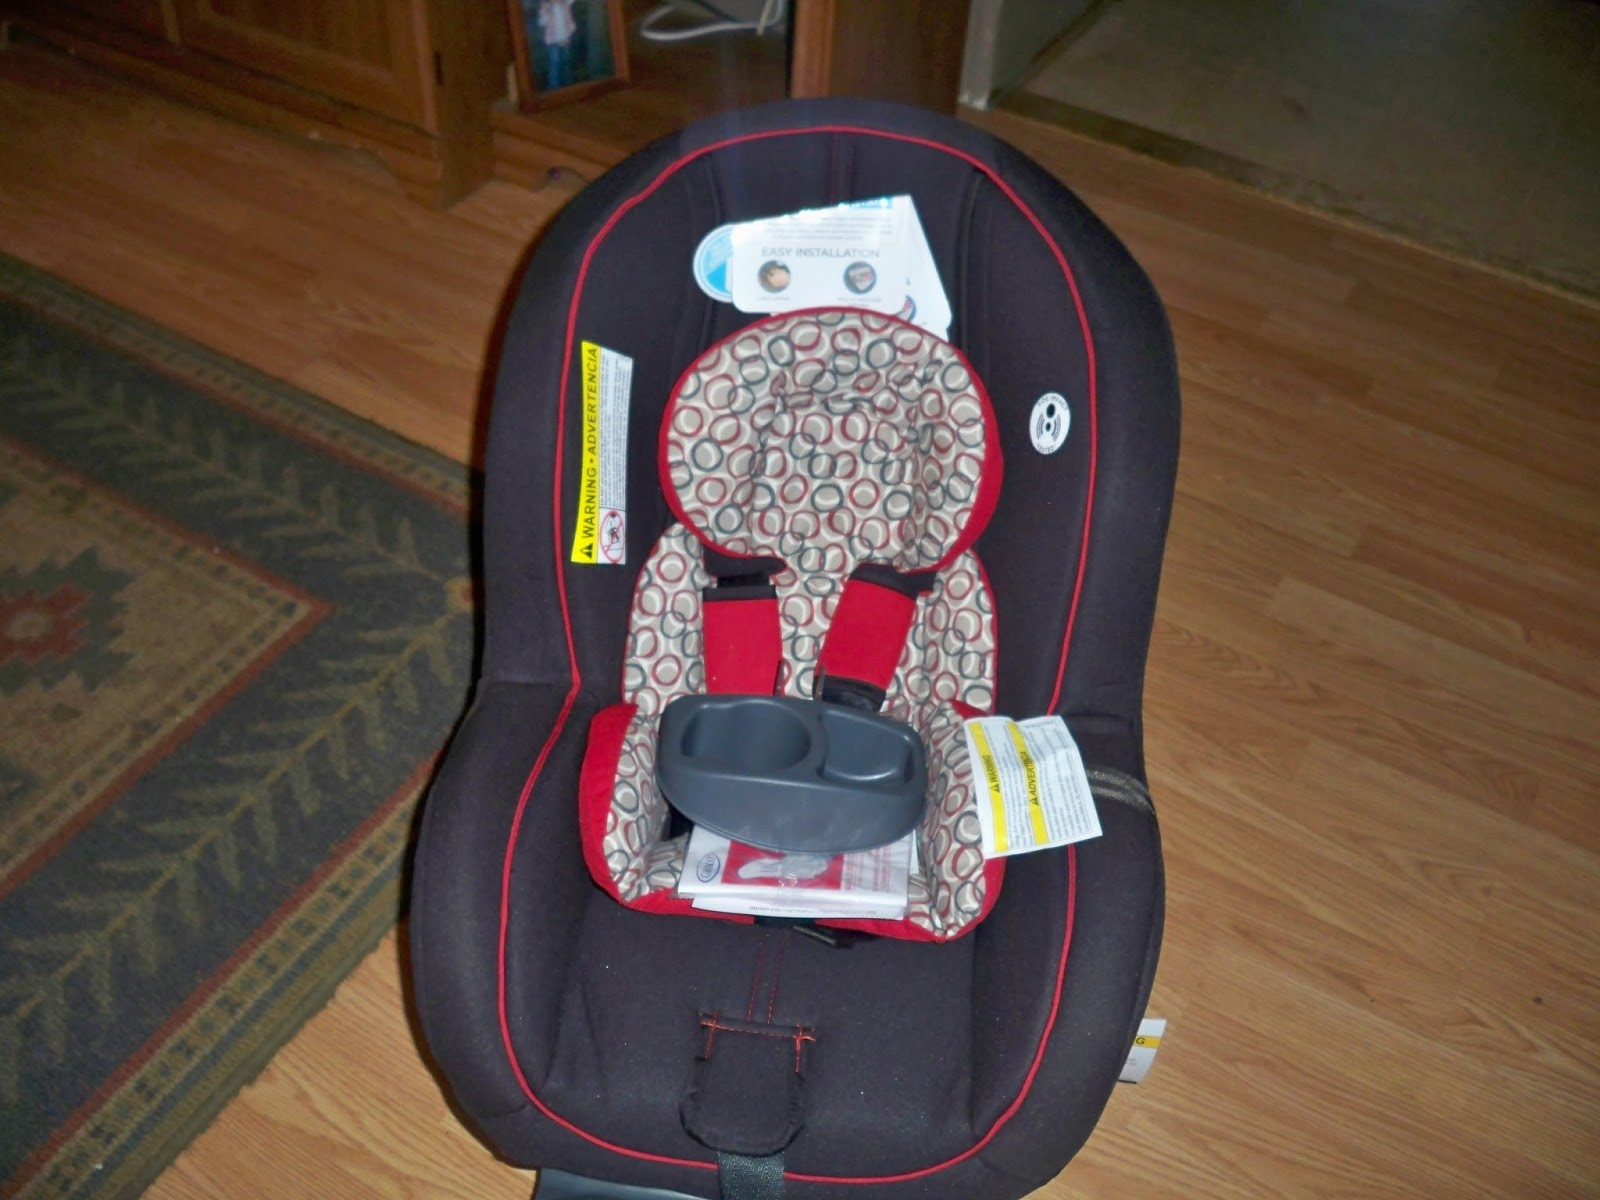 I Love So Many Things About This Car Seat The Cup Holder On Side Is Very Handy And It Can Hold A Snack Or Drink Be Easily Removed For